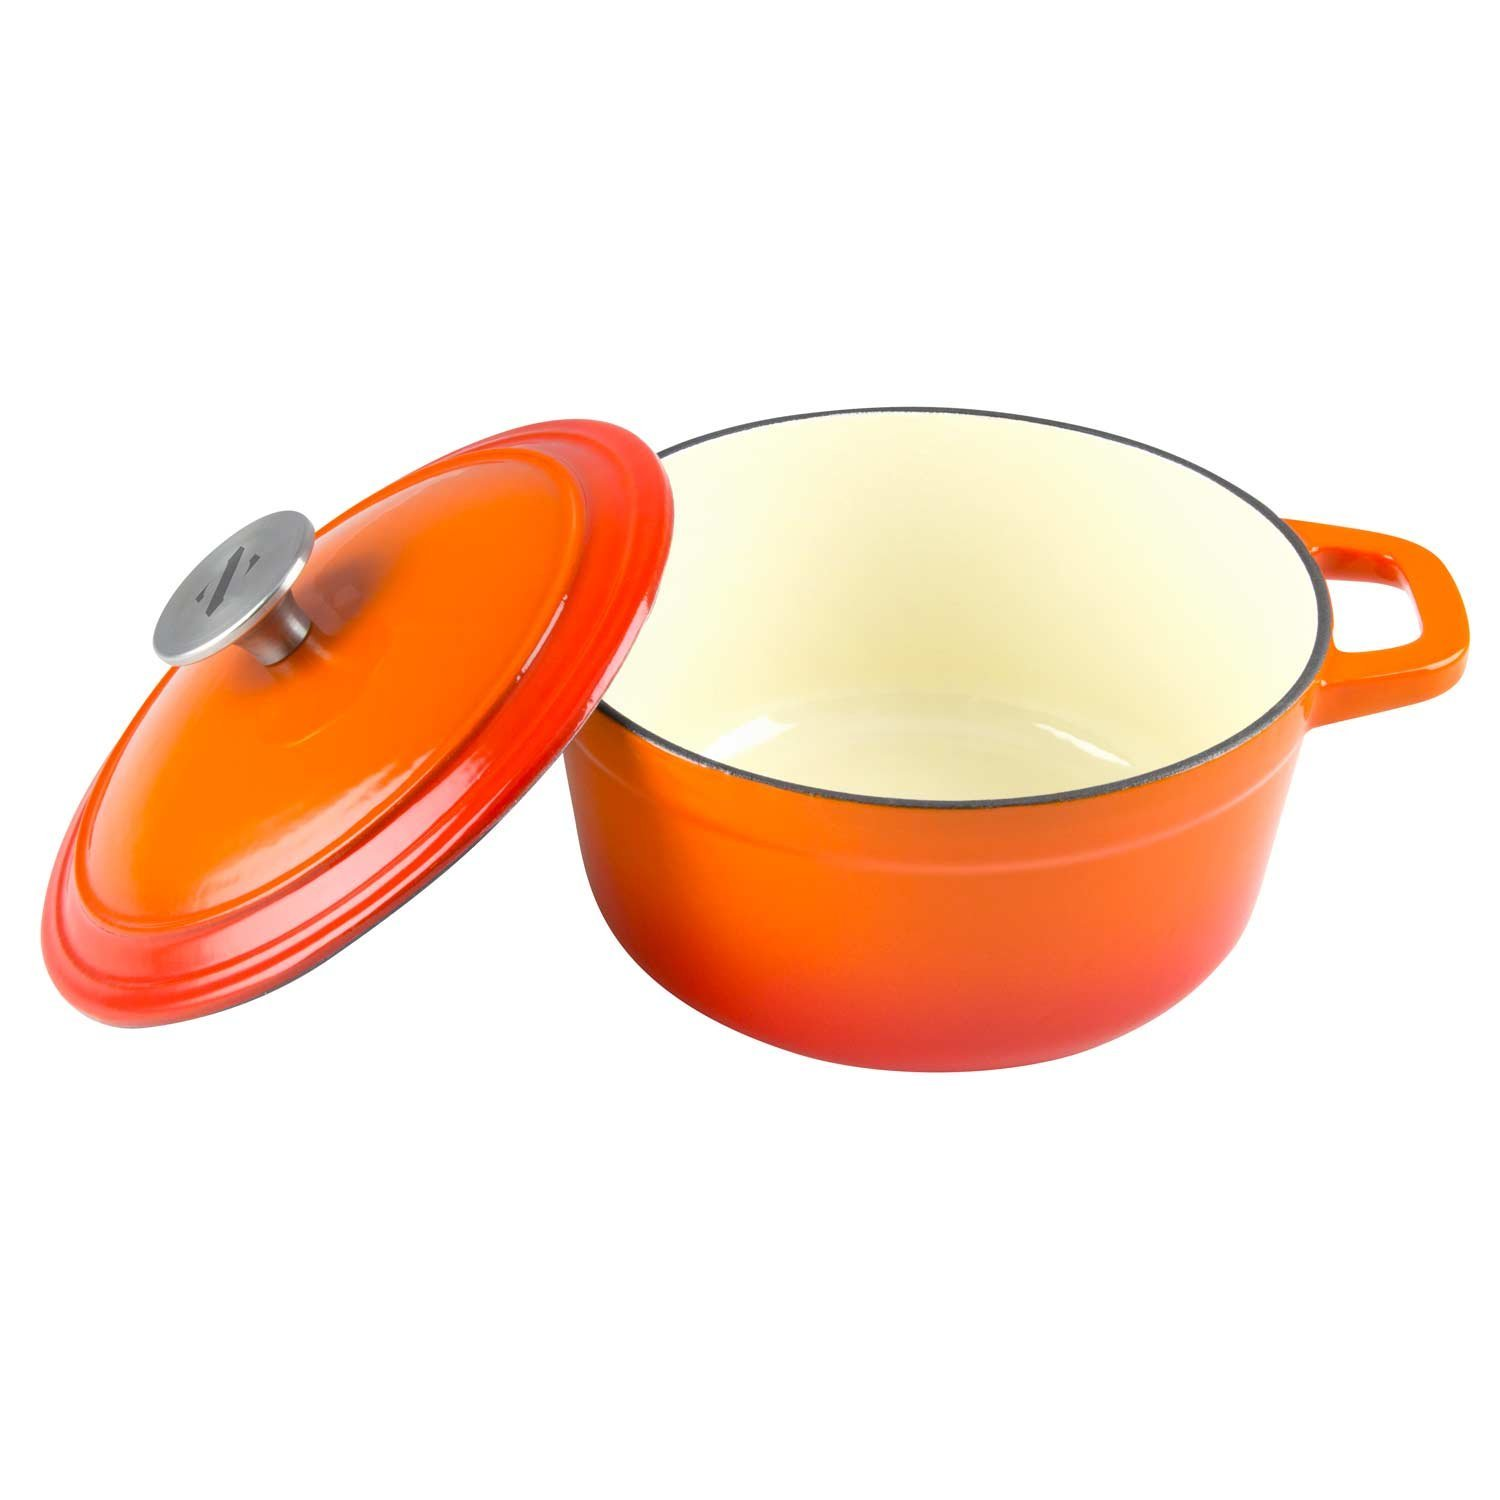 Zelancio 3 Quart Cast Iron Enamel Covered Dutch Oven Cooking Dish with Lid (Tangerine Orange)